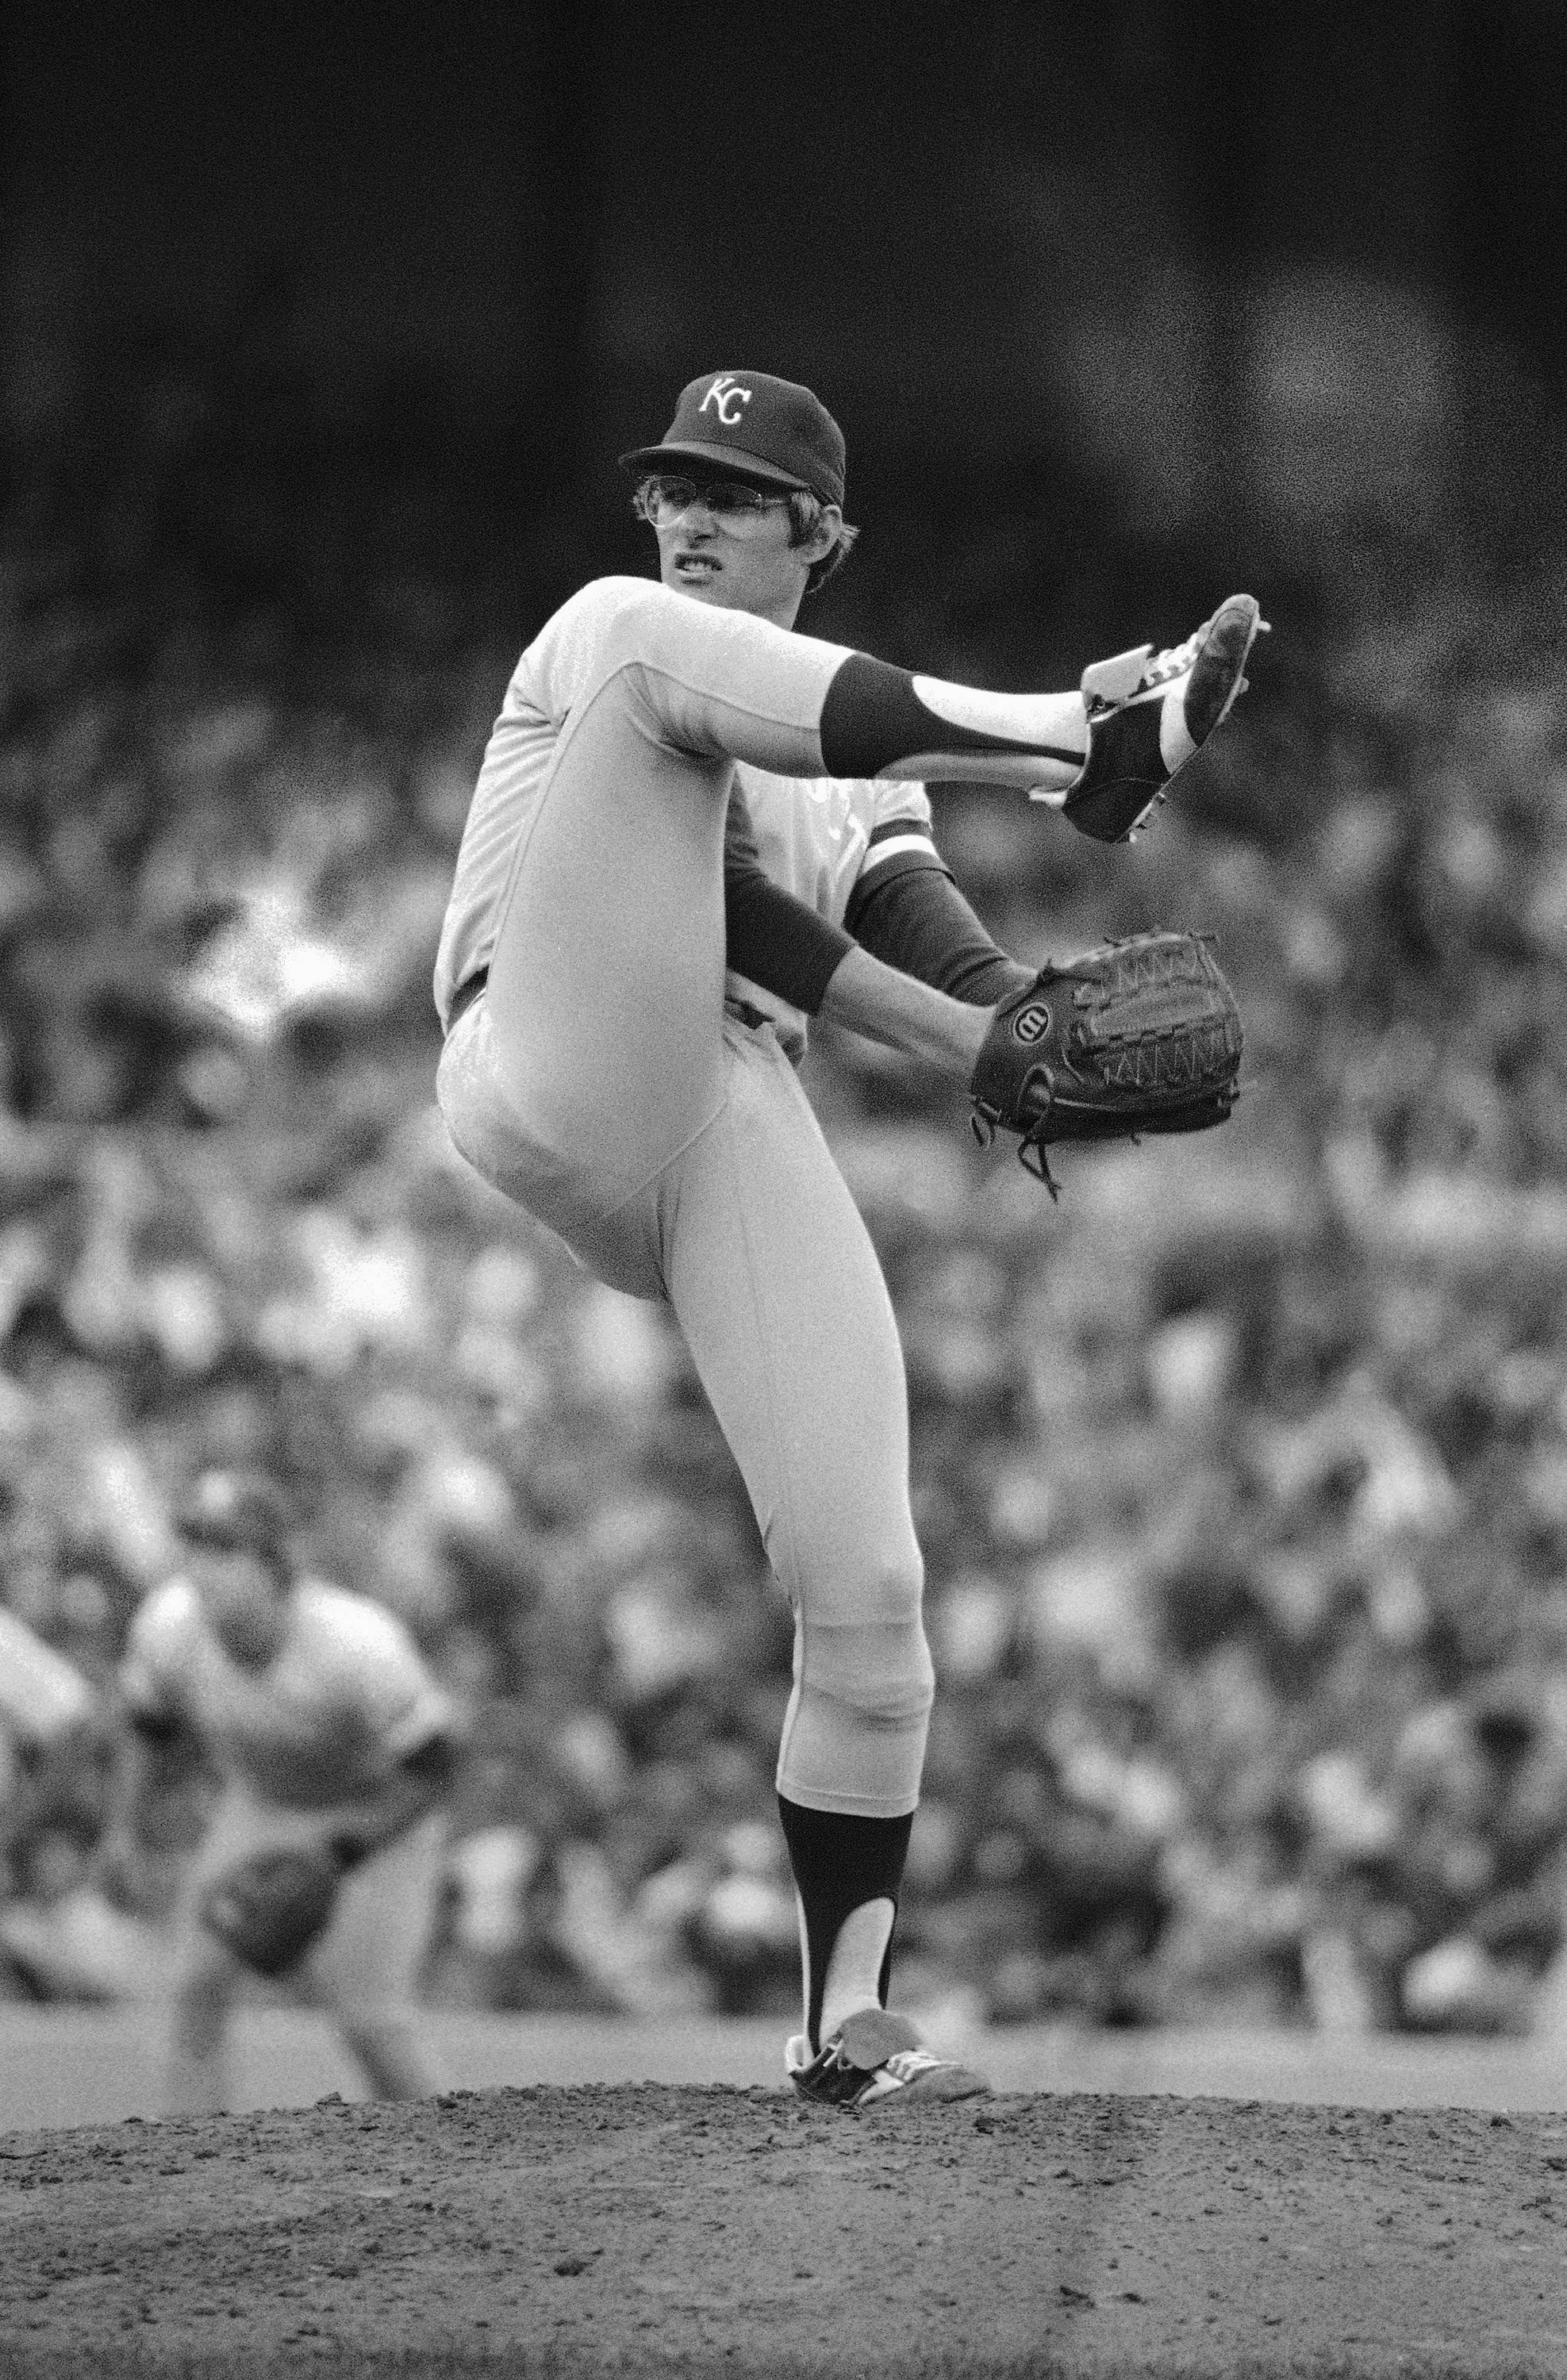 Kansas City Royals southpaw Paul Splittorff deals to the New York Yankees in their playoff opener on Oct. 6, 1977. He got credit for the Royals 7-2 victory.